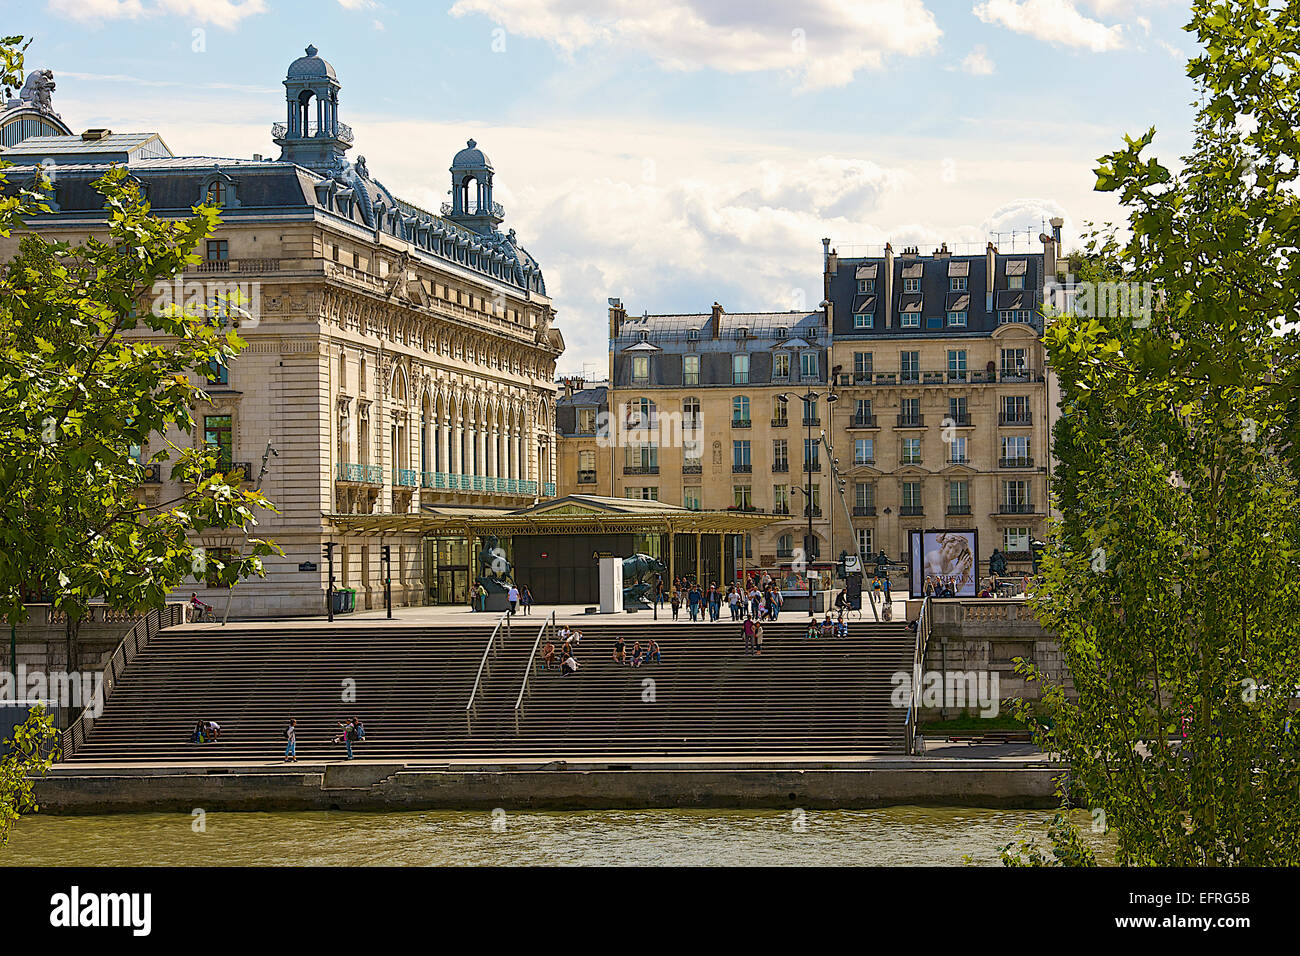 Musee d'Orsay, Paris, France - Stock Image